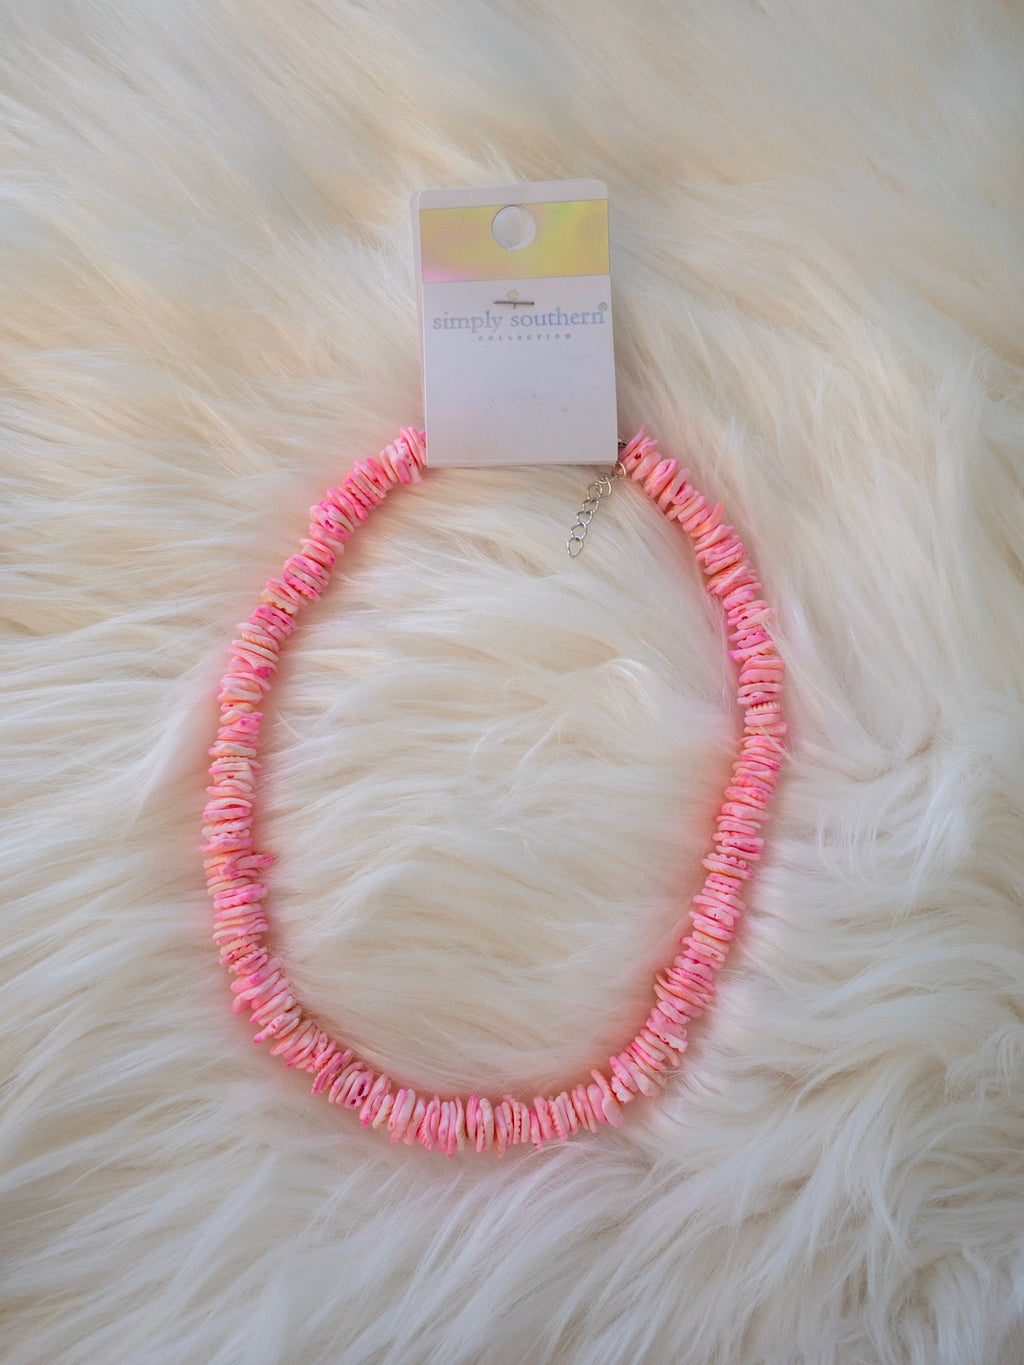 Simply Southern Pink Puka Shell Necklace - Monogram Gifts